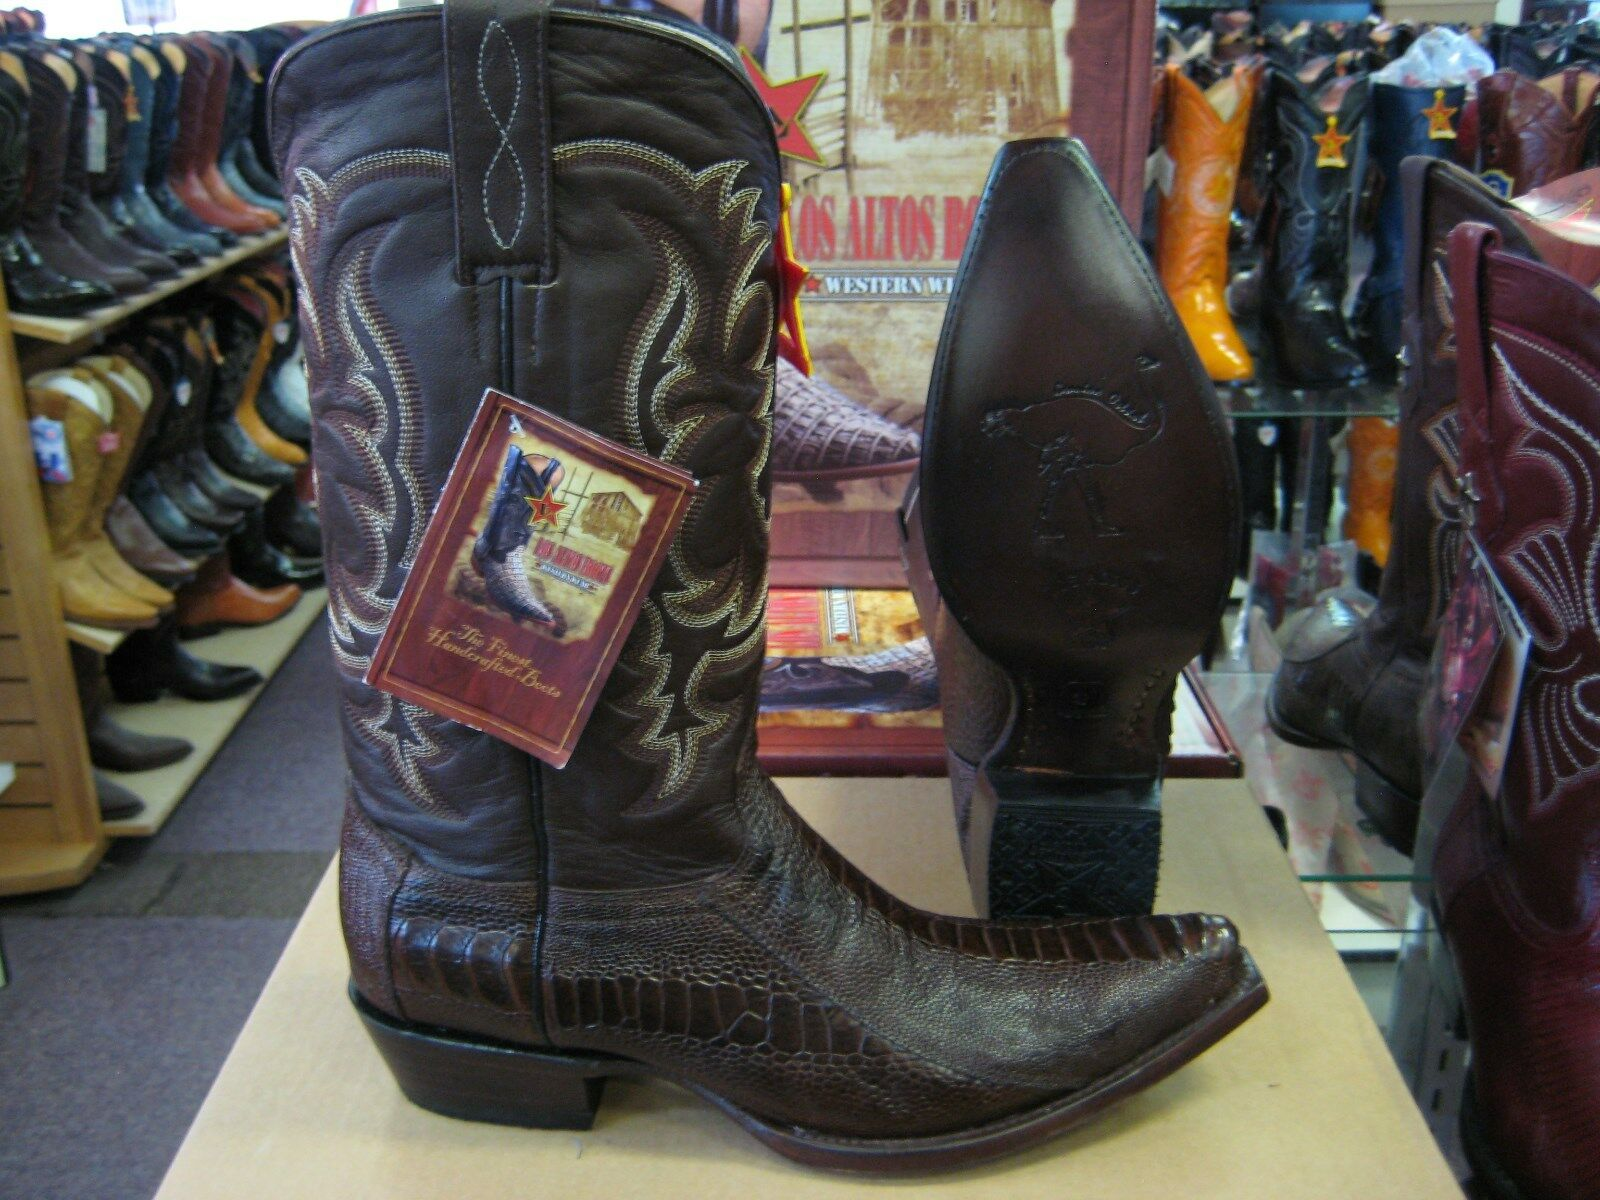 Los altos Marrón Mujeres Pierna Vaquero Occidental SNIP Toe Avestruz bota (M) L940507